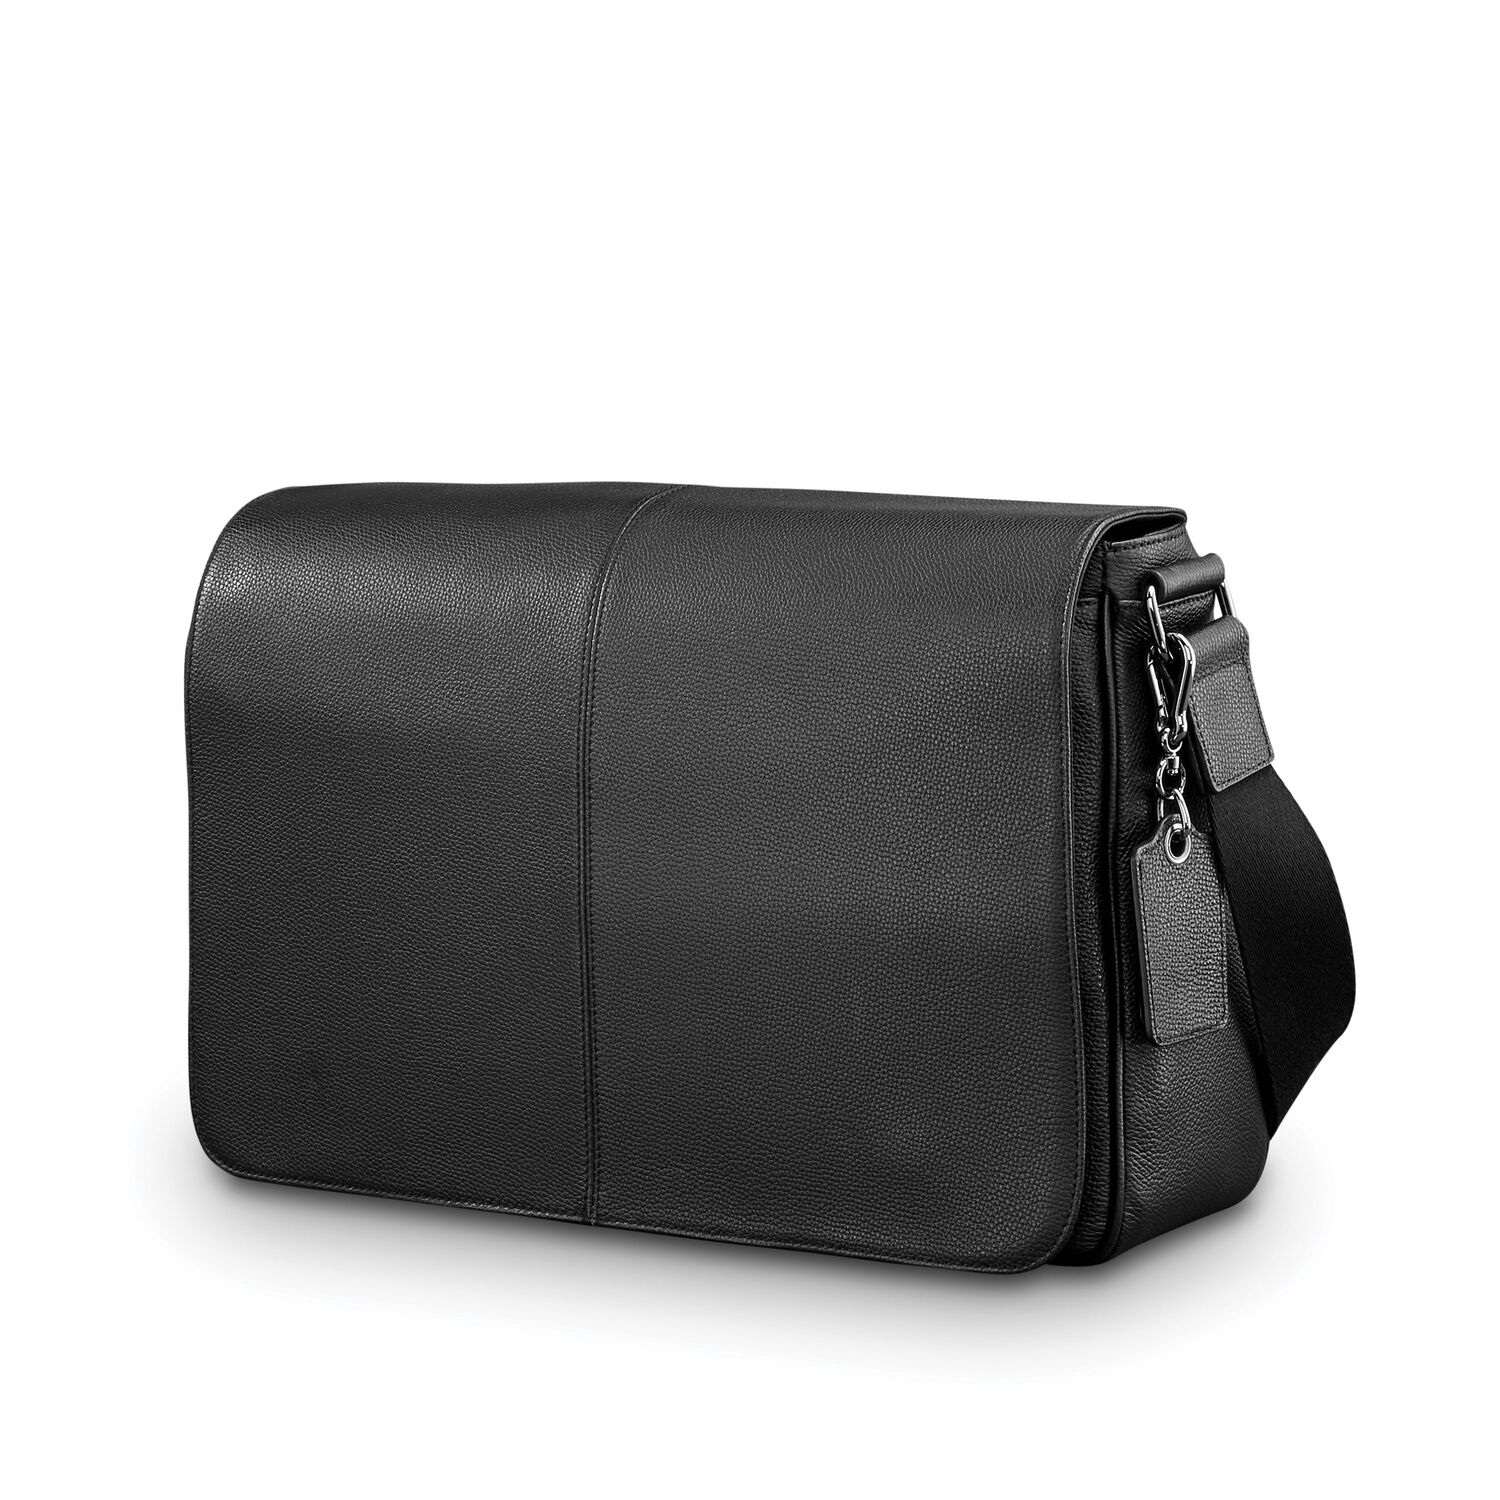 Samsonite Mens Leather Classic Messenger in the color Black. 00b80b1db6982